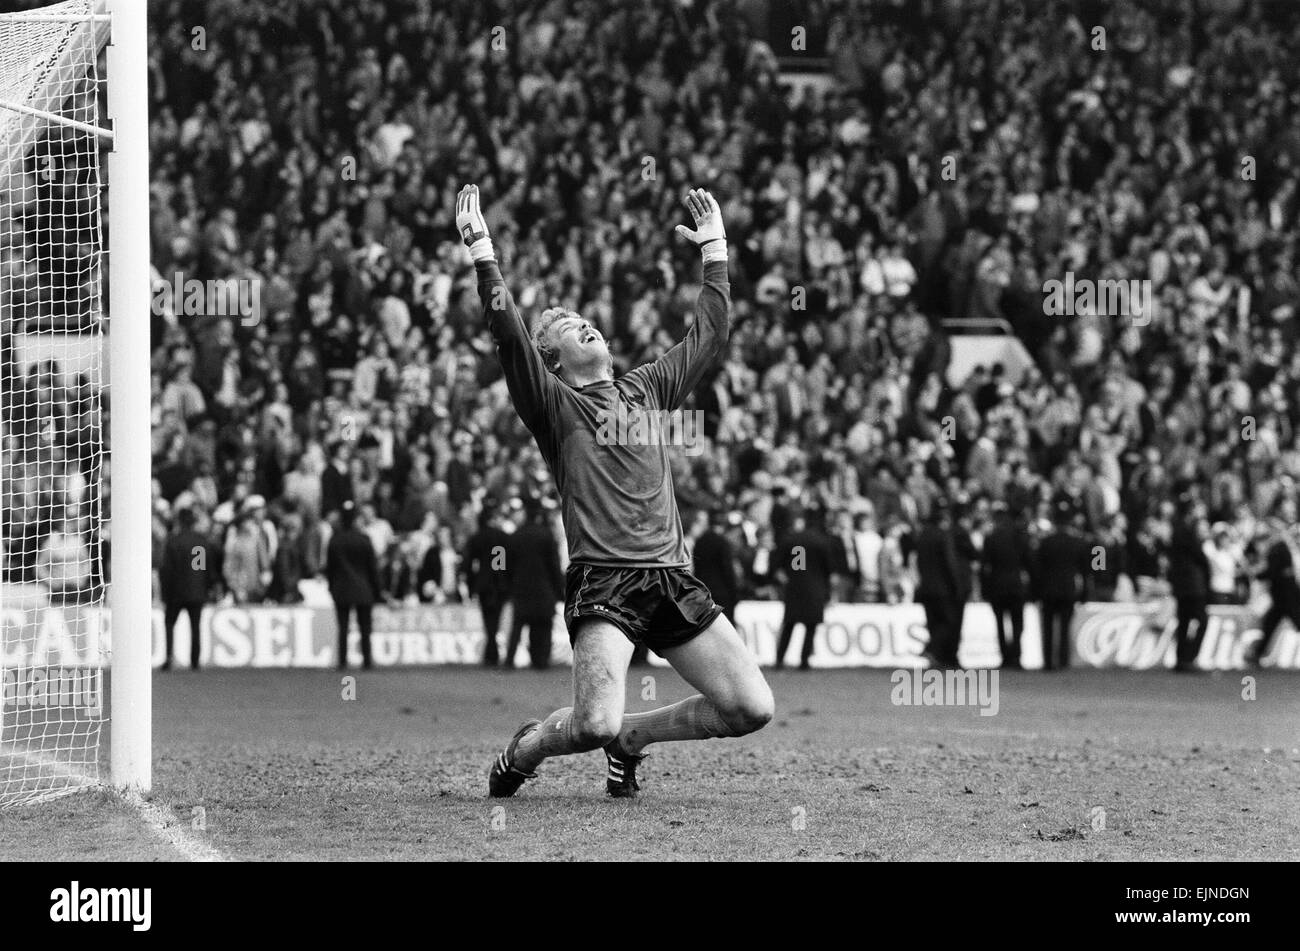 FA Cup Semi Final Wolverhampton Wanderers Vs Tottenham Hotspur In 1981 The Between And Wolves Was Played At